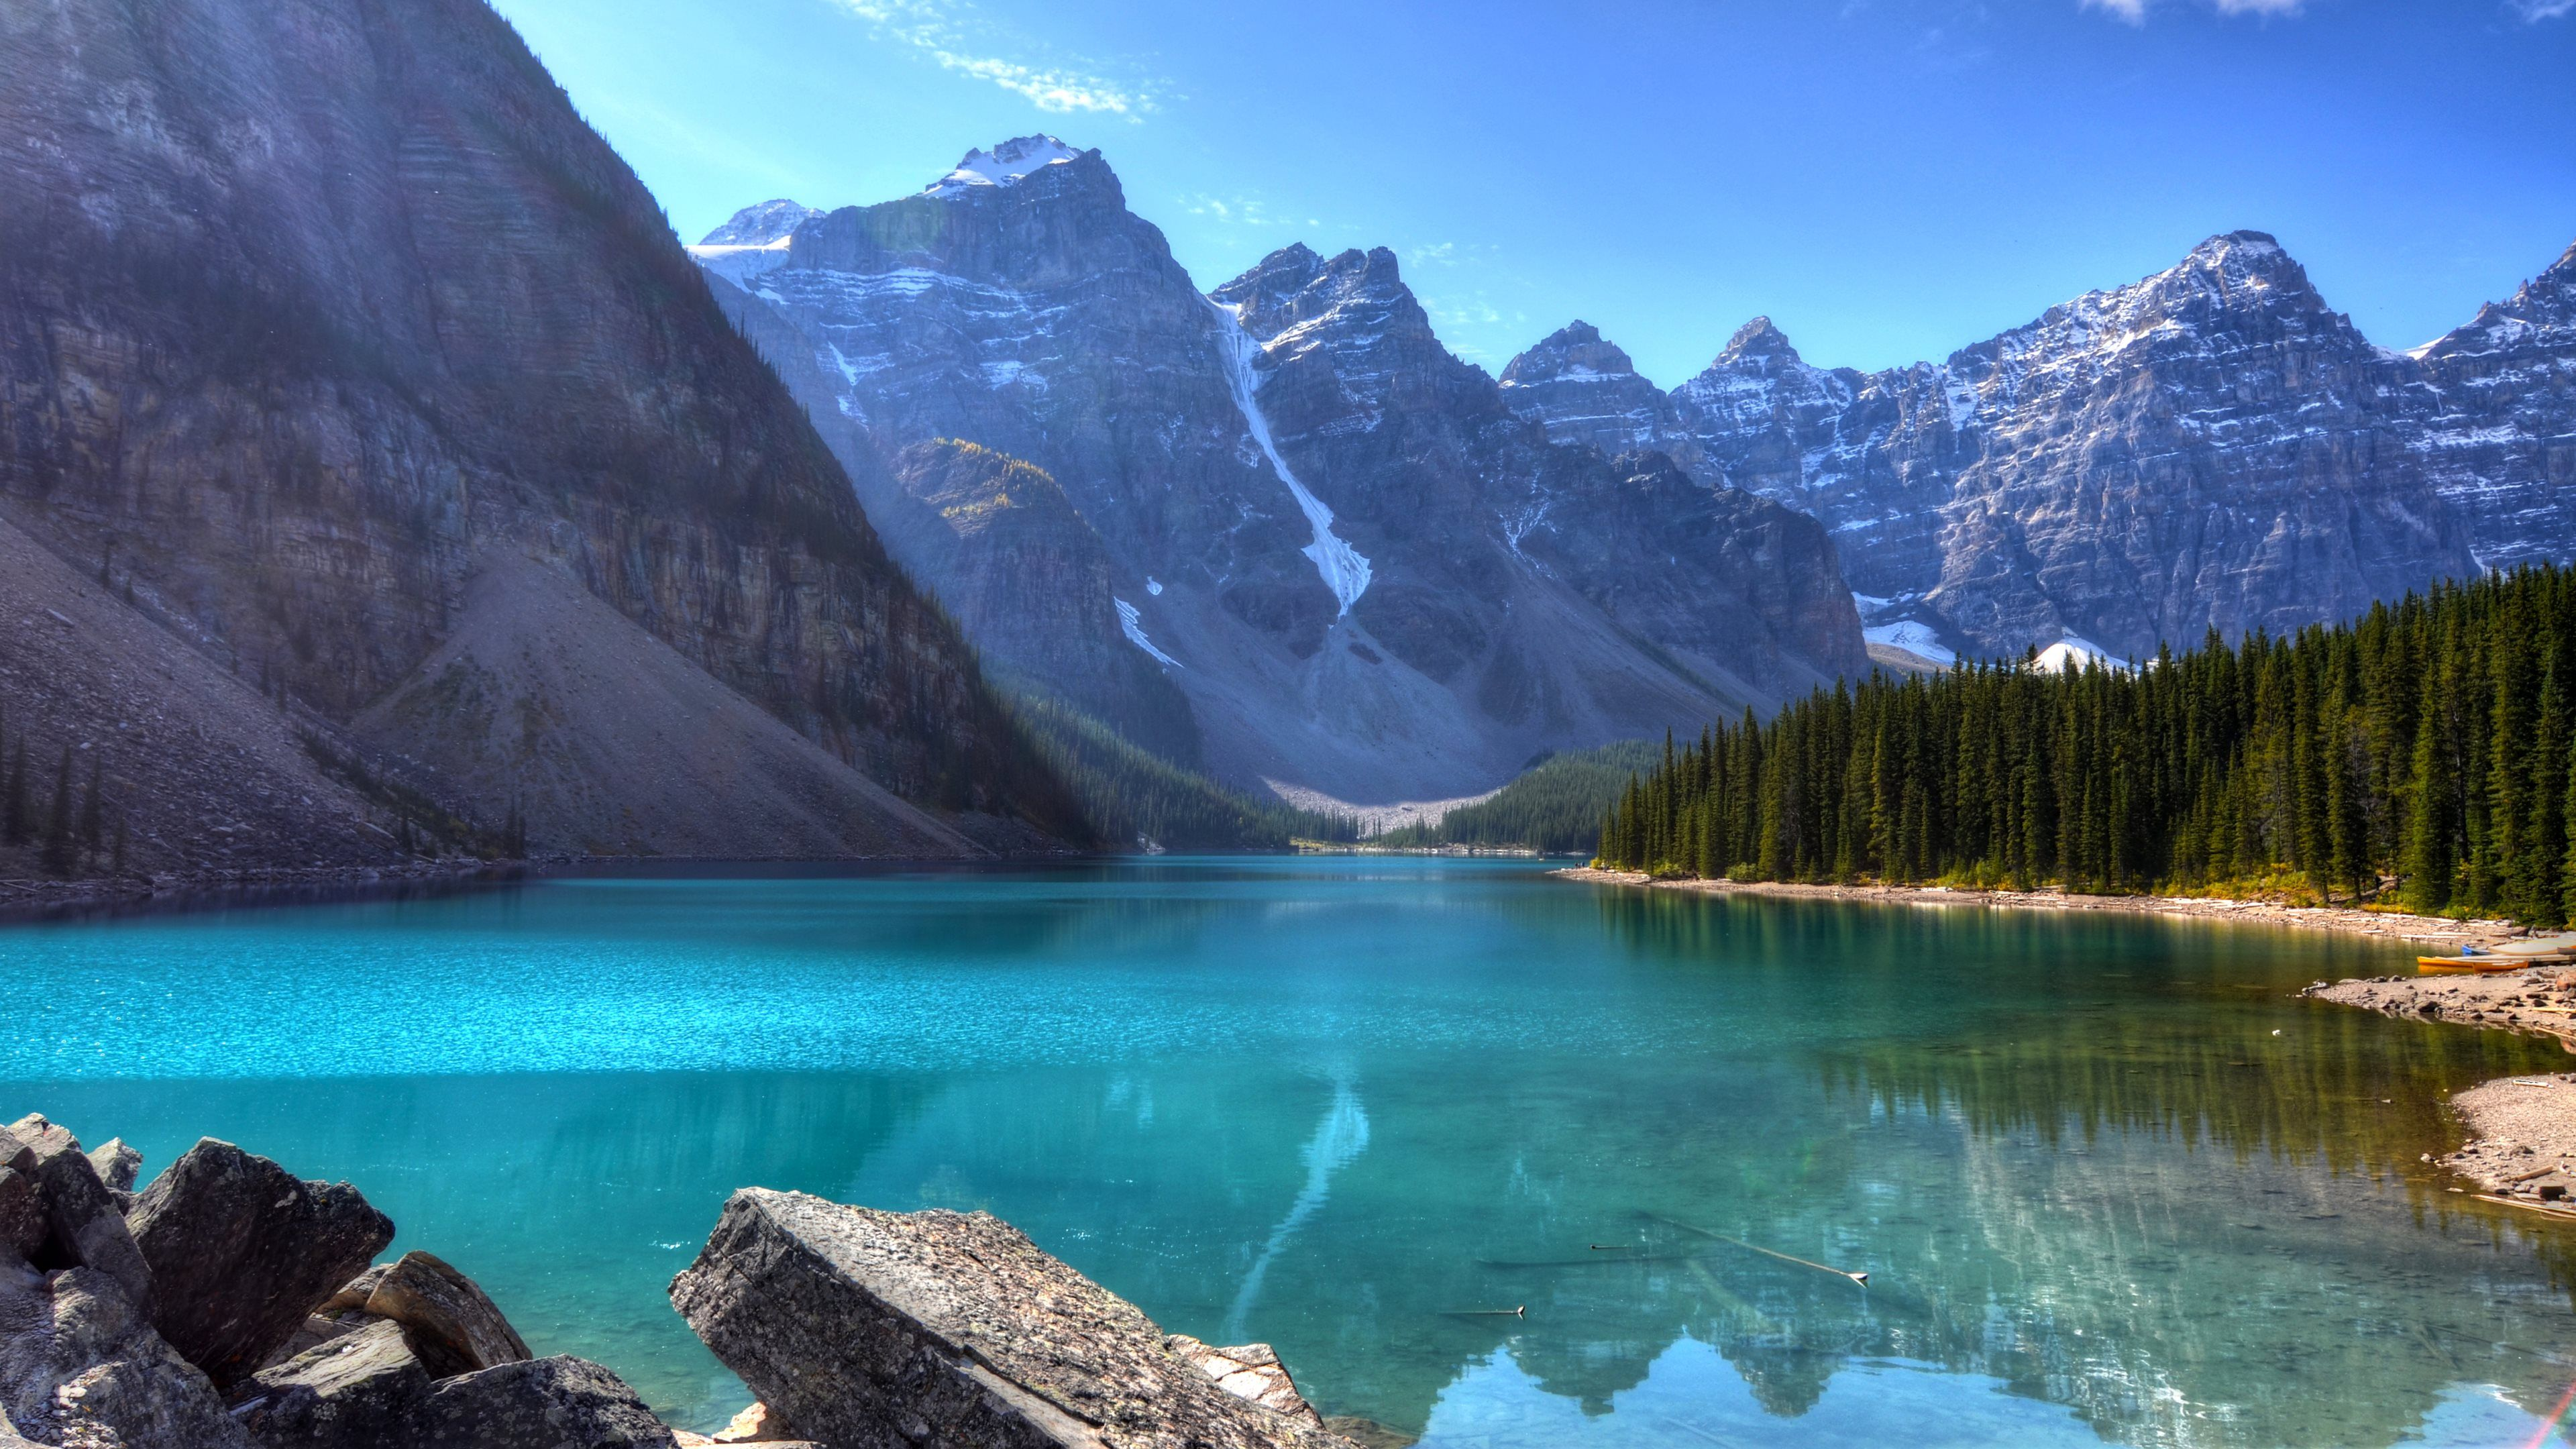 45 Banff National Park HD Wallpapers